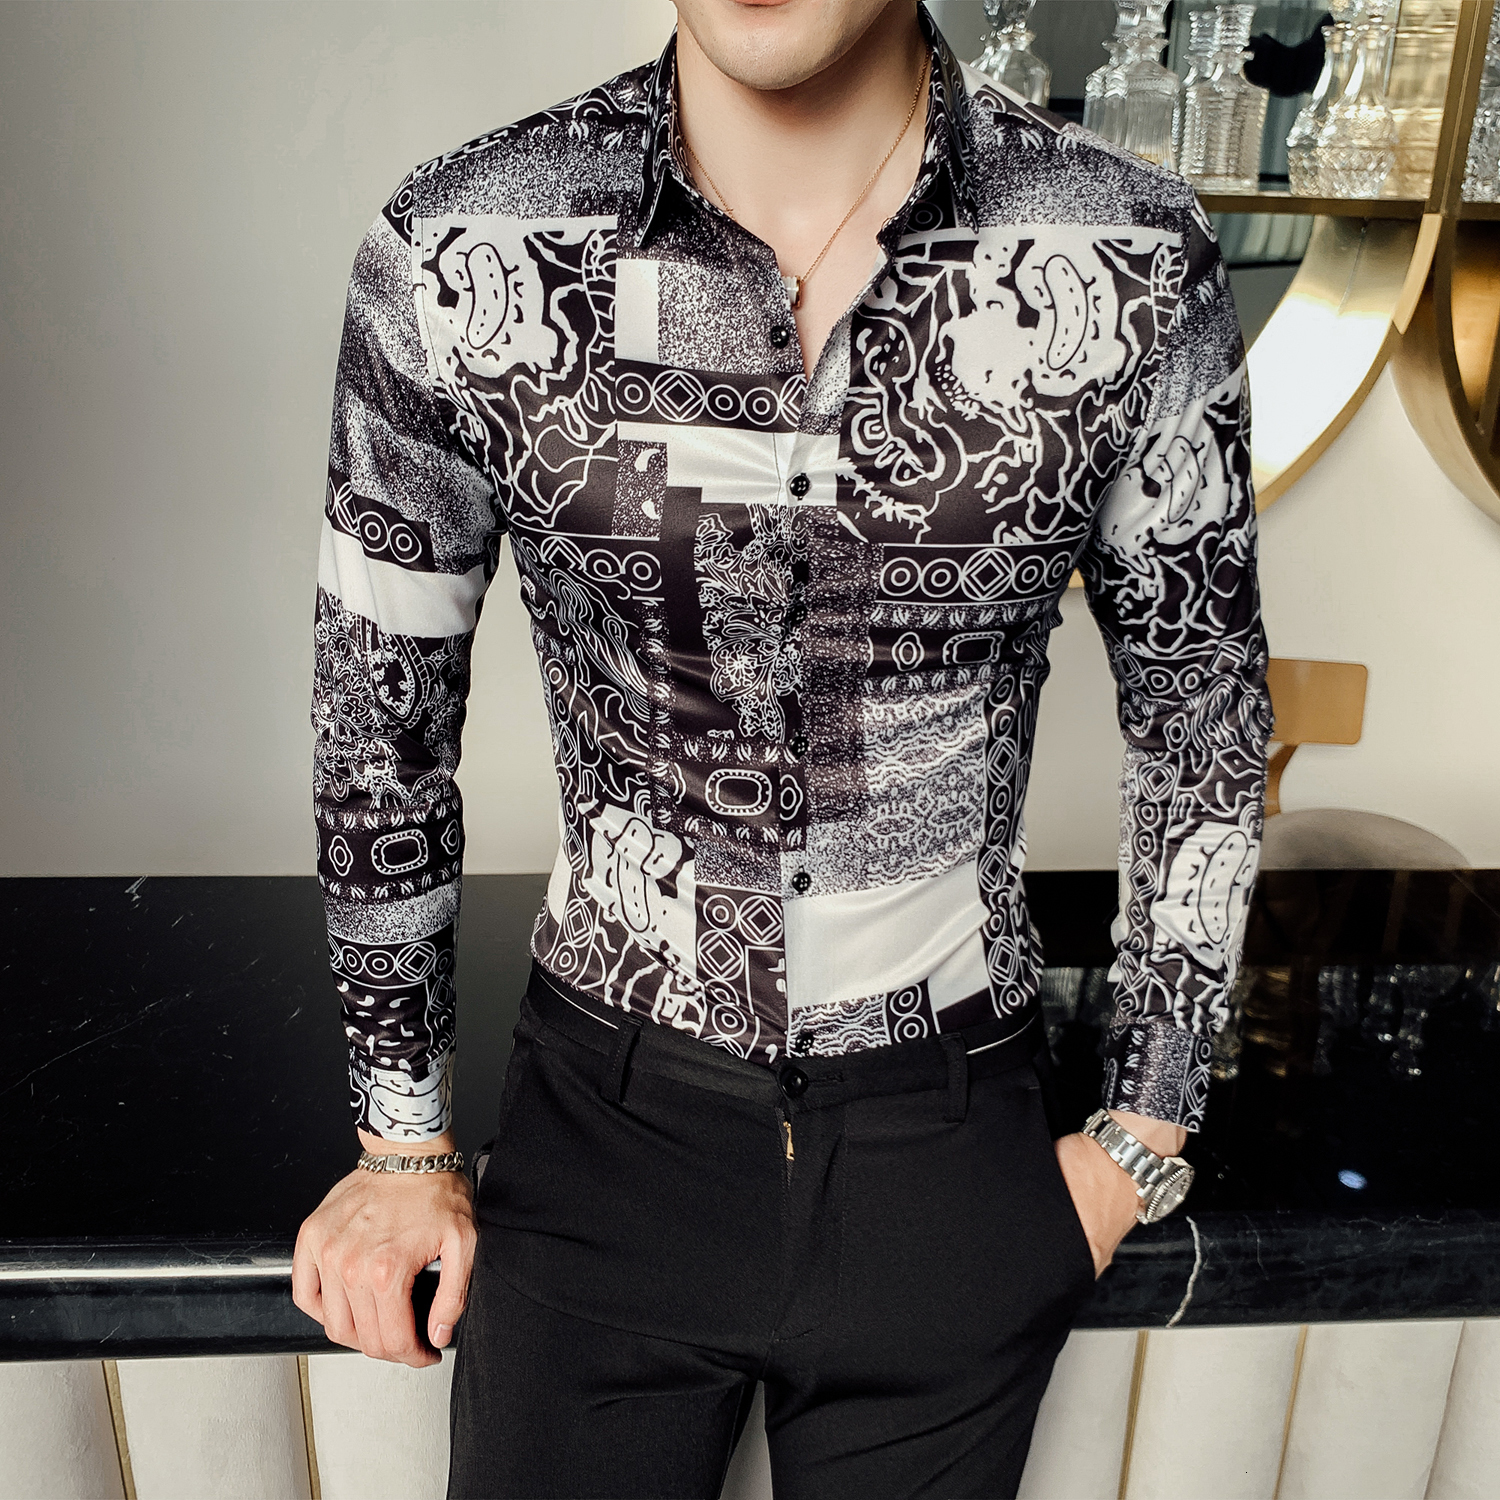 Fashion 2019 Autumn British Style Floral Shirt Men Long Sleeve Tuxedo Shirt Night Club Party Wear Streetwear Mens Casual Shirts